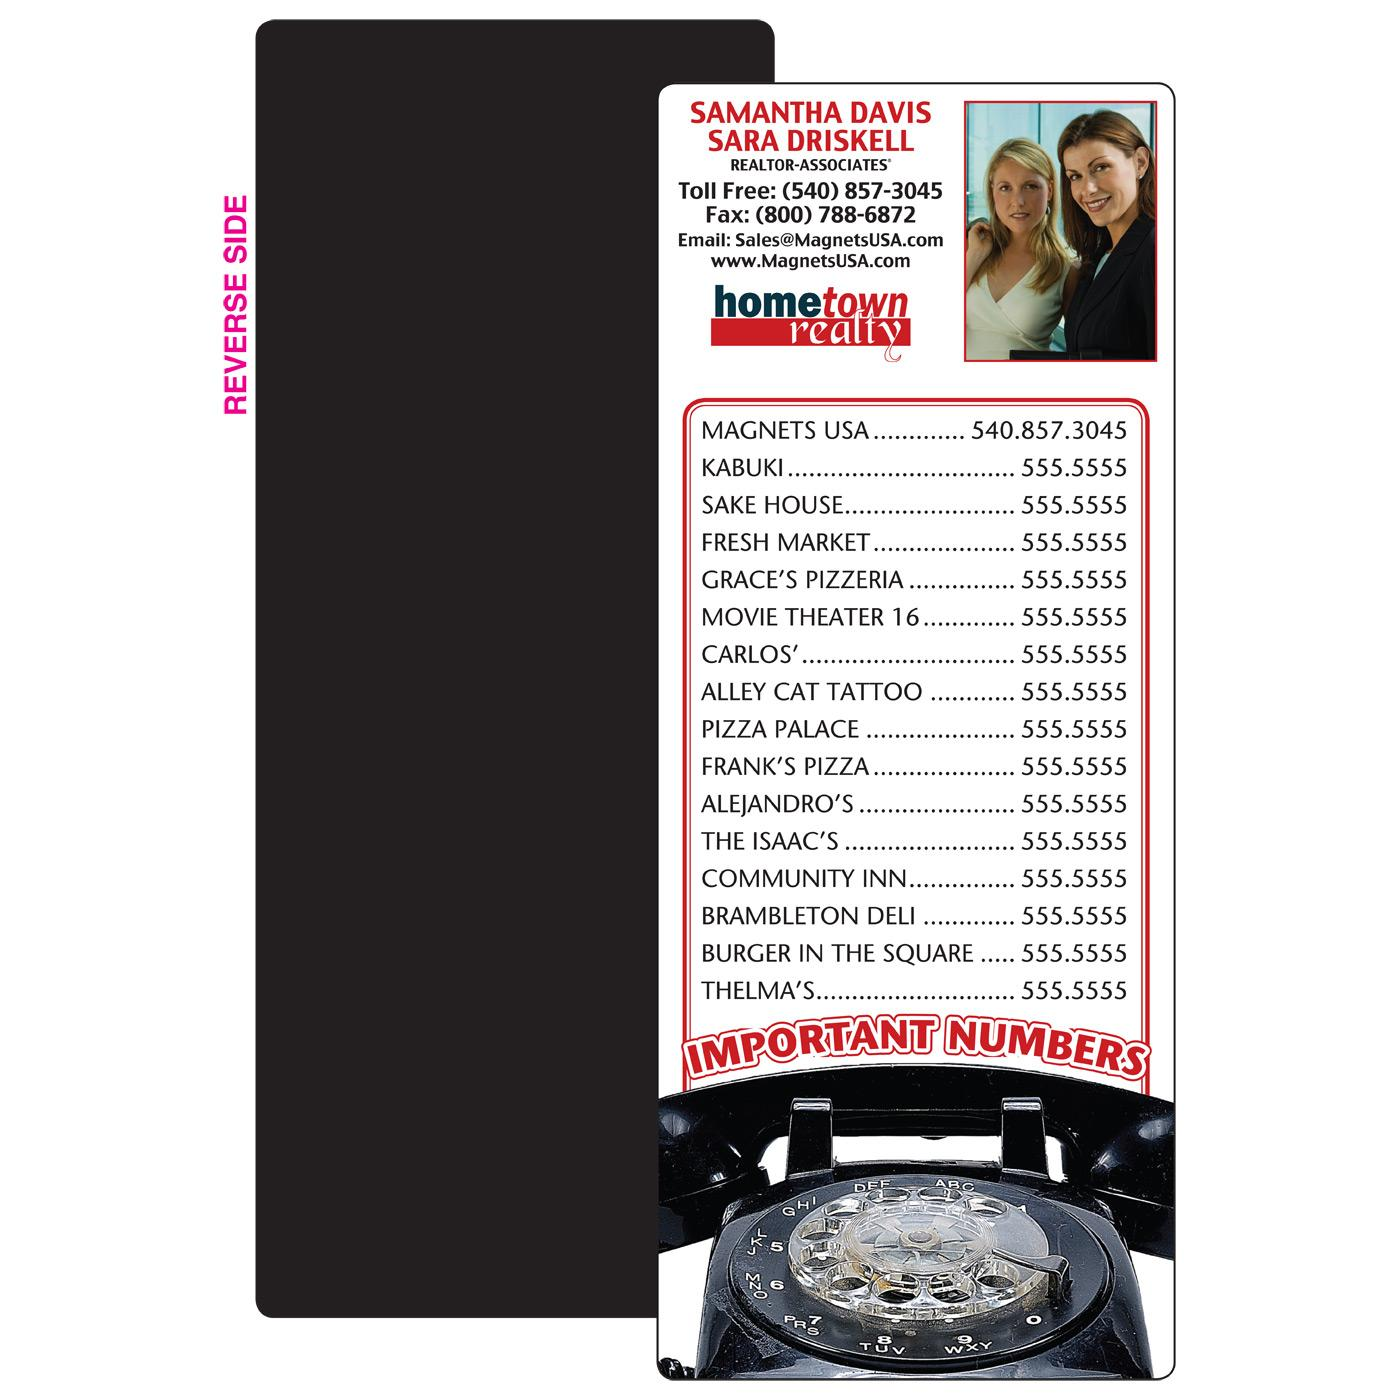 Phone List Full Magnet